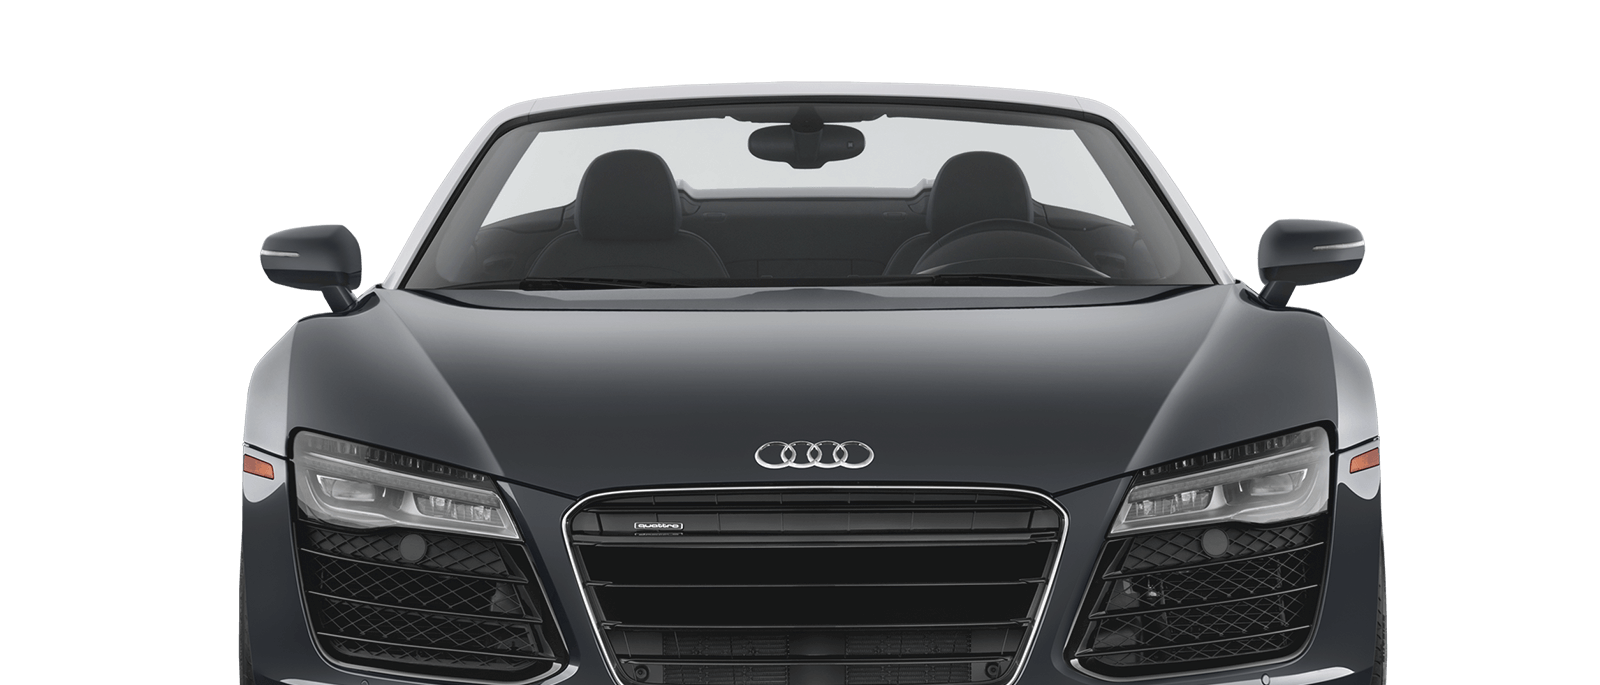 Audi R8 Spyder Car Rental Exotic Car Collection By